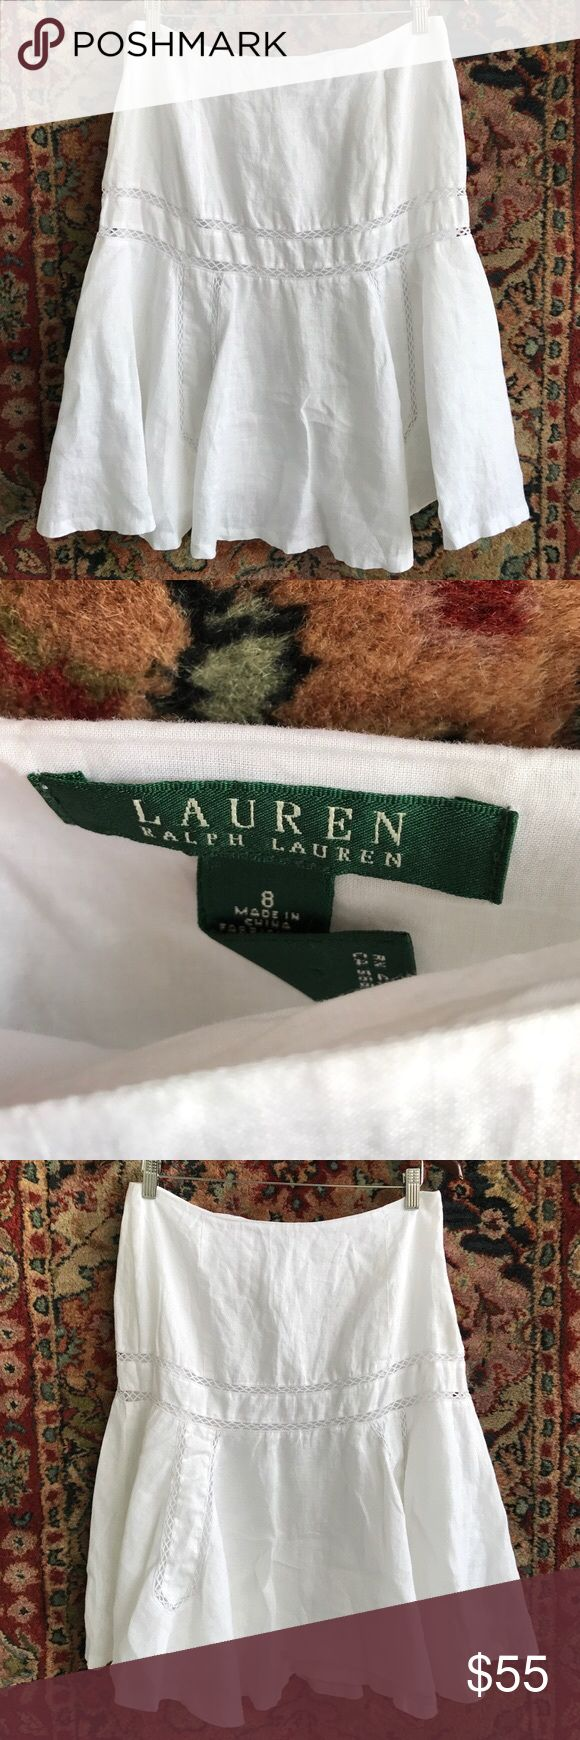 """LRL Linen Trumpet Skirt Elegance and feels like luxury. Lace details create shape while Linen flows. Side zip and in excellent condition. 15.25"""" waist and 23.5"""" L Lauren Ralph Lauren Skirts A-Line or Full"""